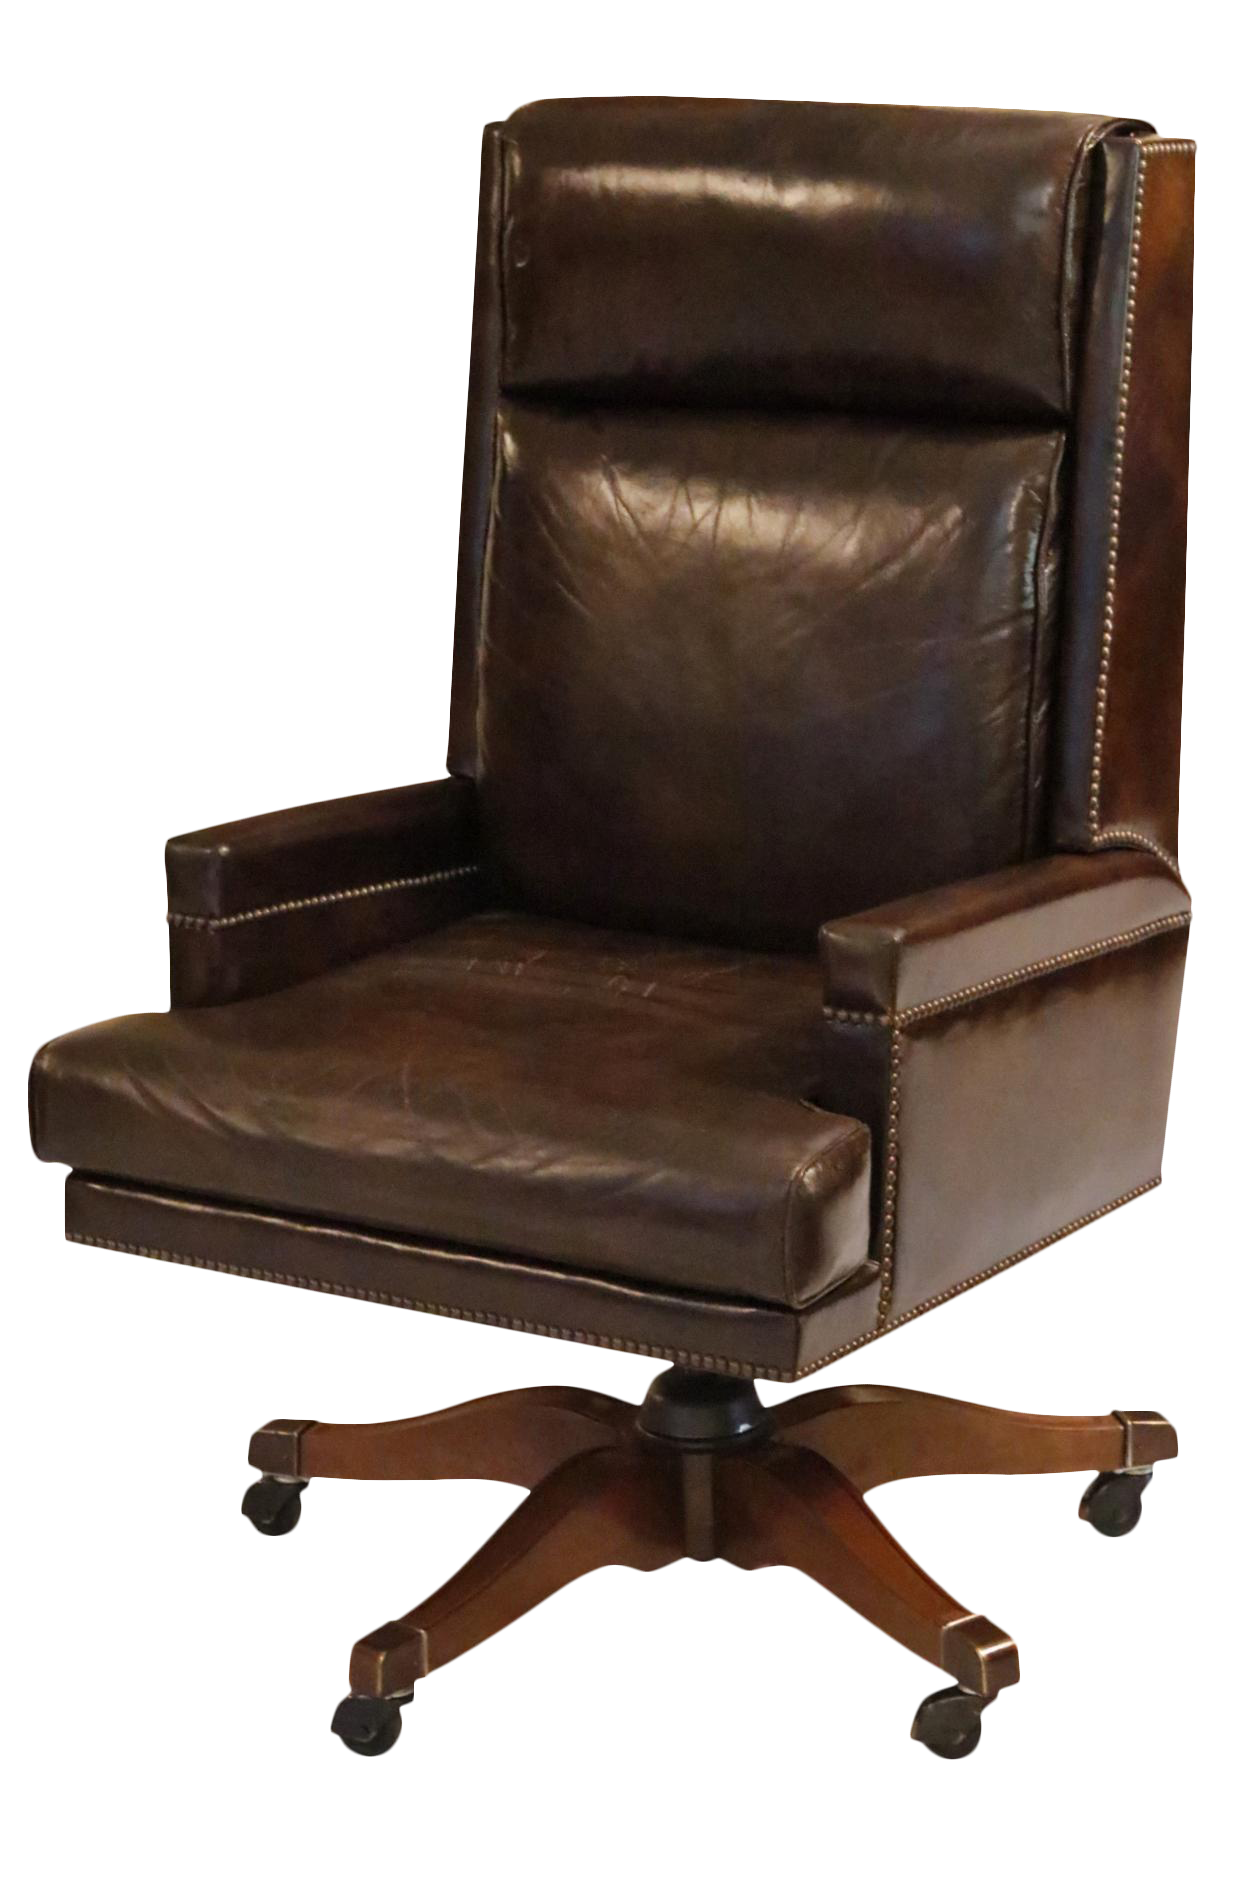 Executive Leather Desk Chair By Baker Furniture